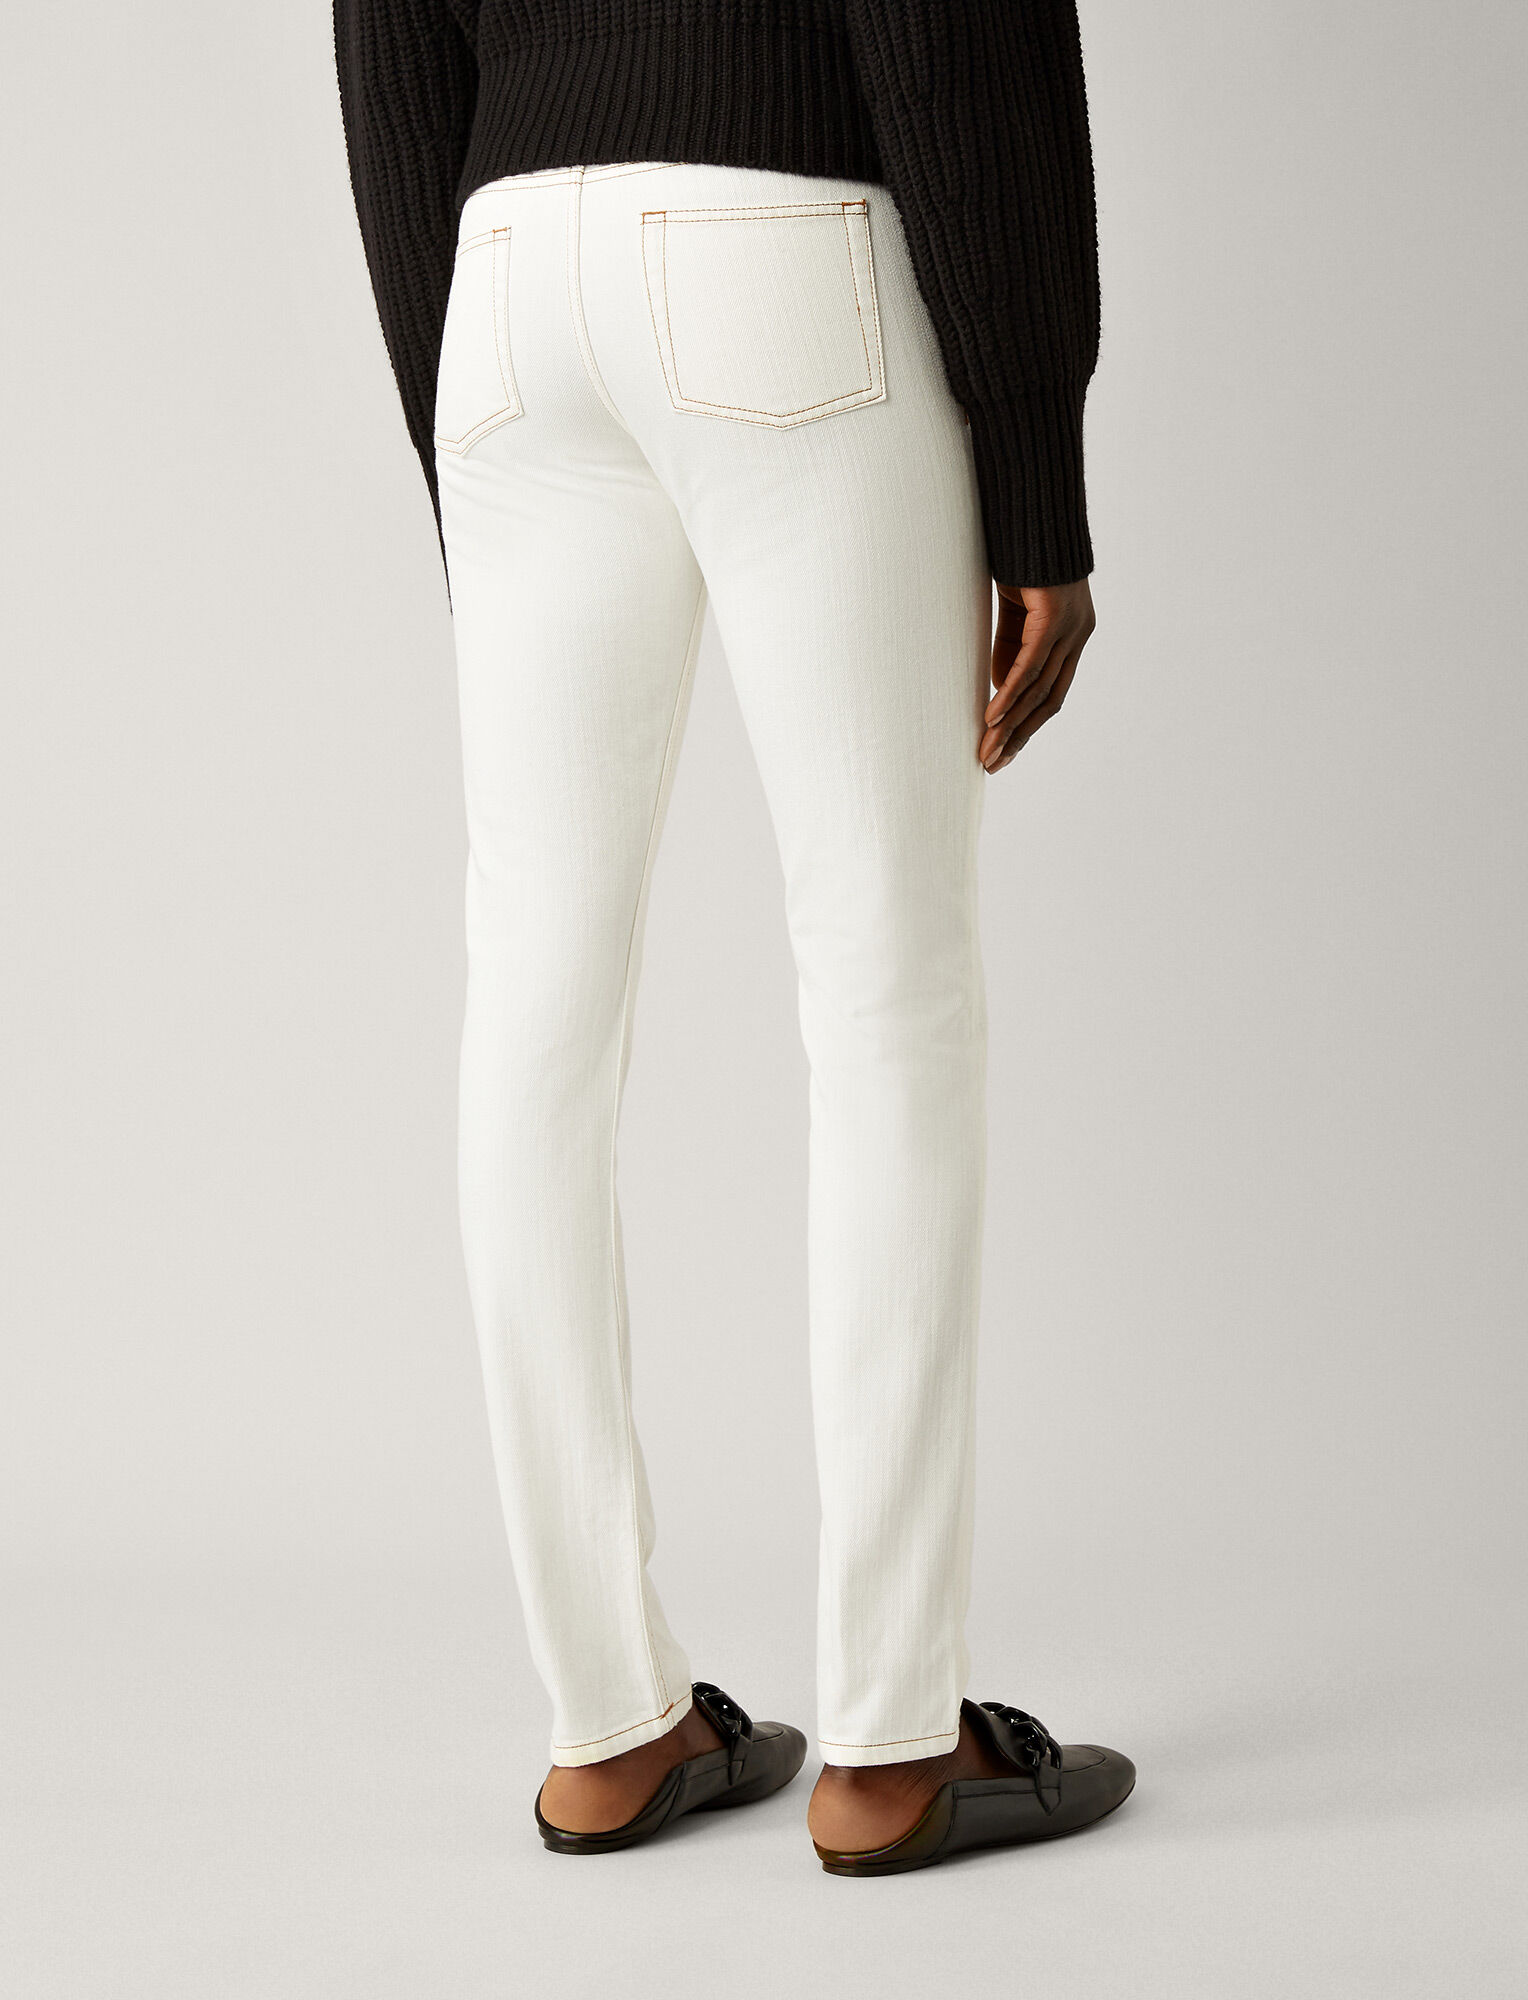 Joseph, Cloud White Denim Trousers, in WHITE